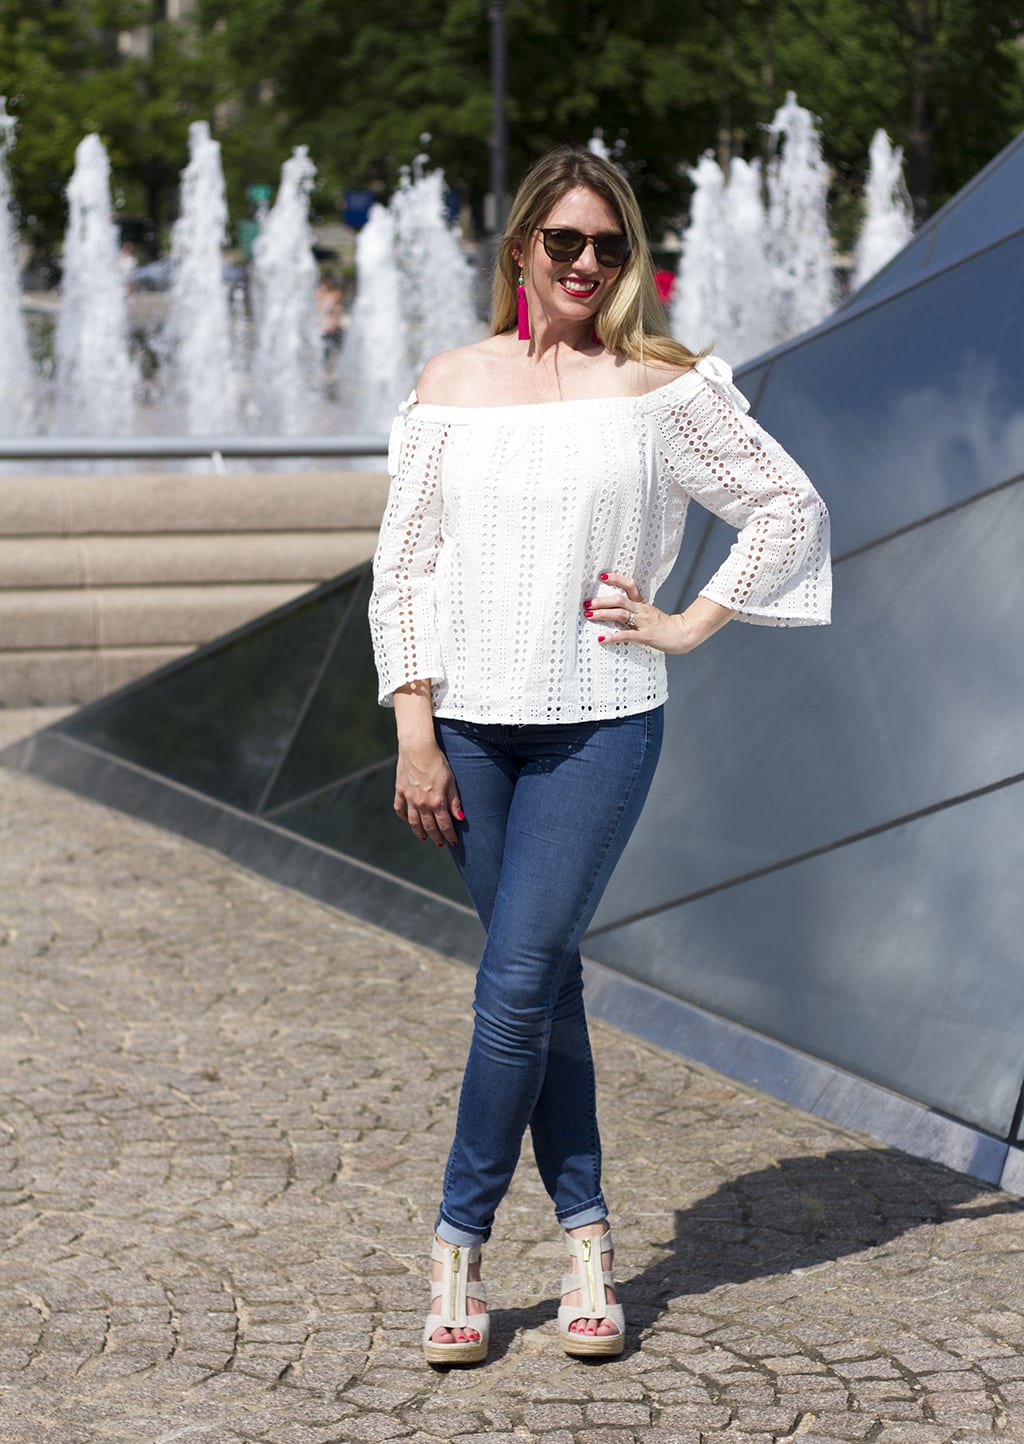 White Eyelet Top - Off-The-Shoulder Summer Look That's Super Versatile! White Eyelet Top with jeans and white wedge shoes